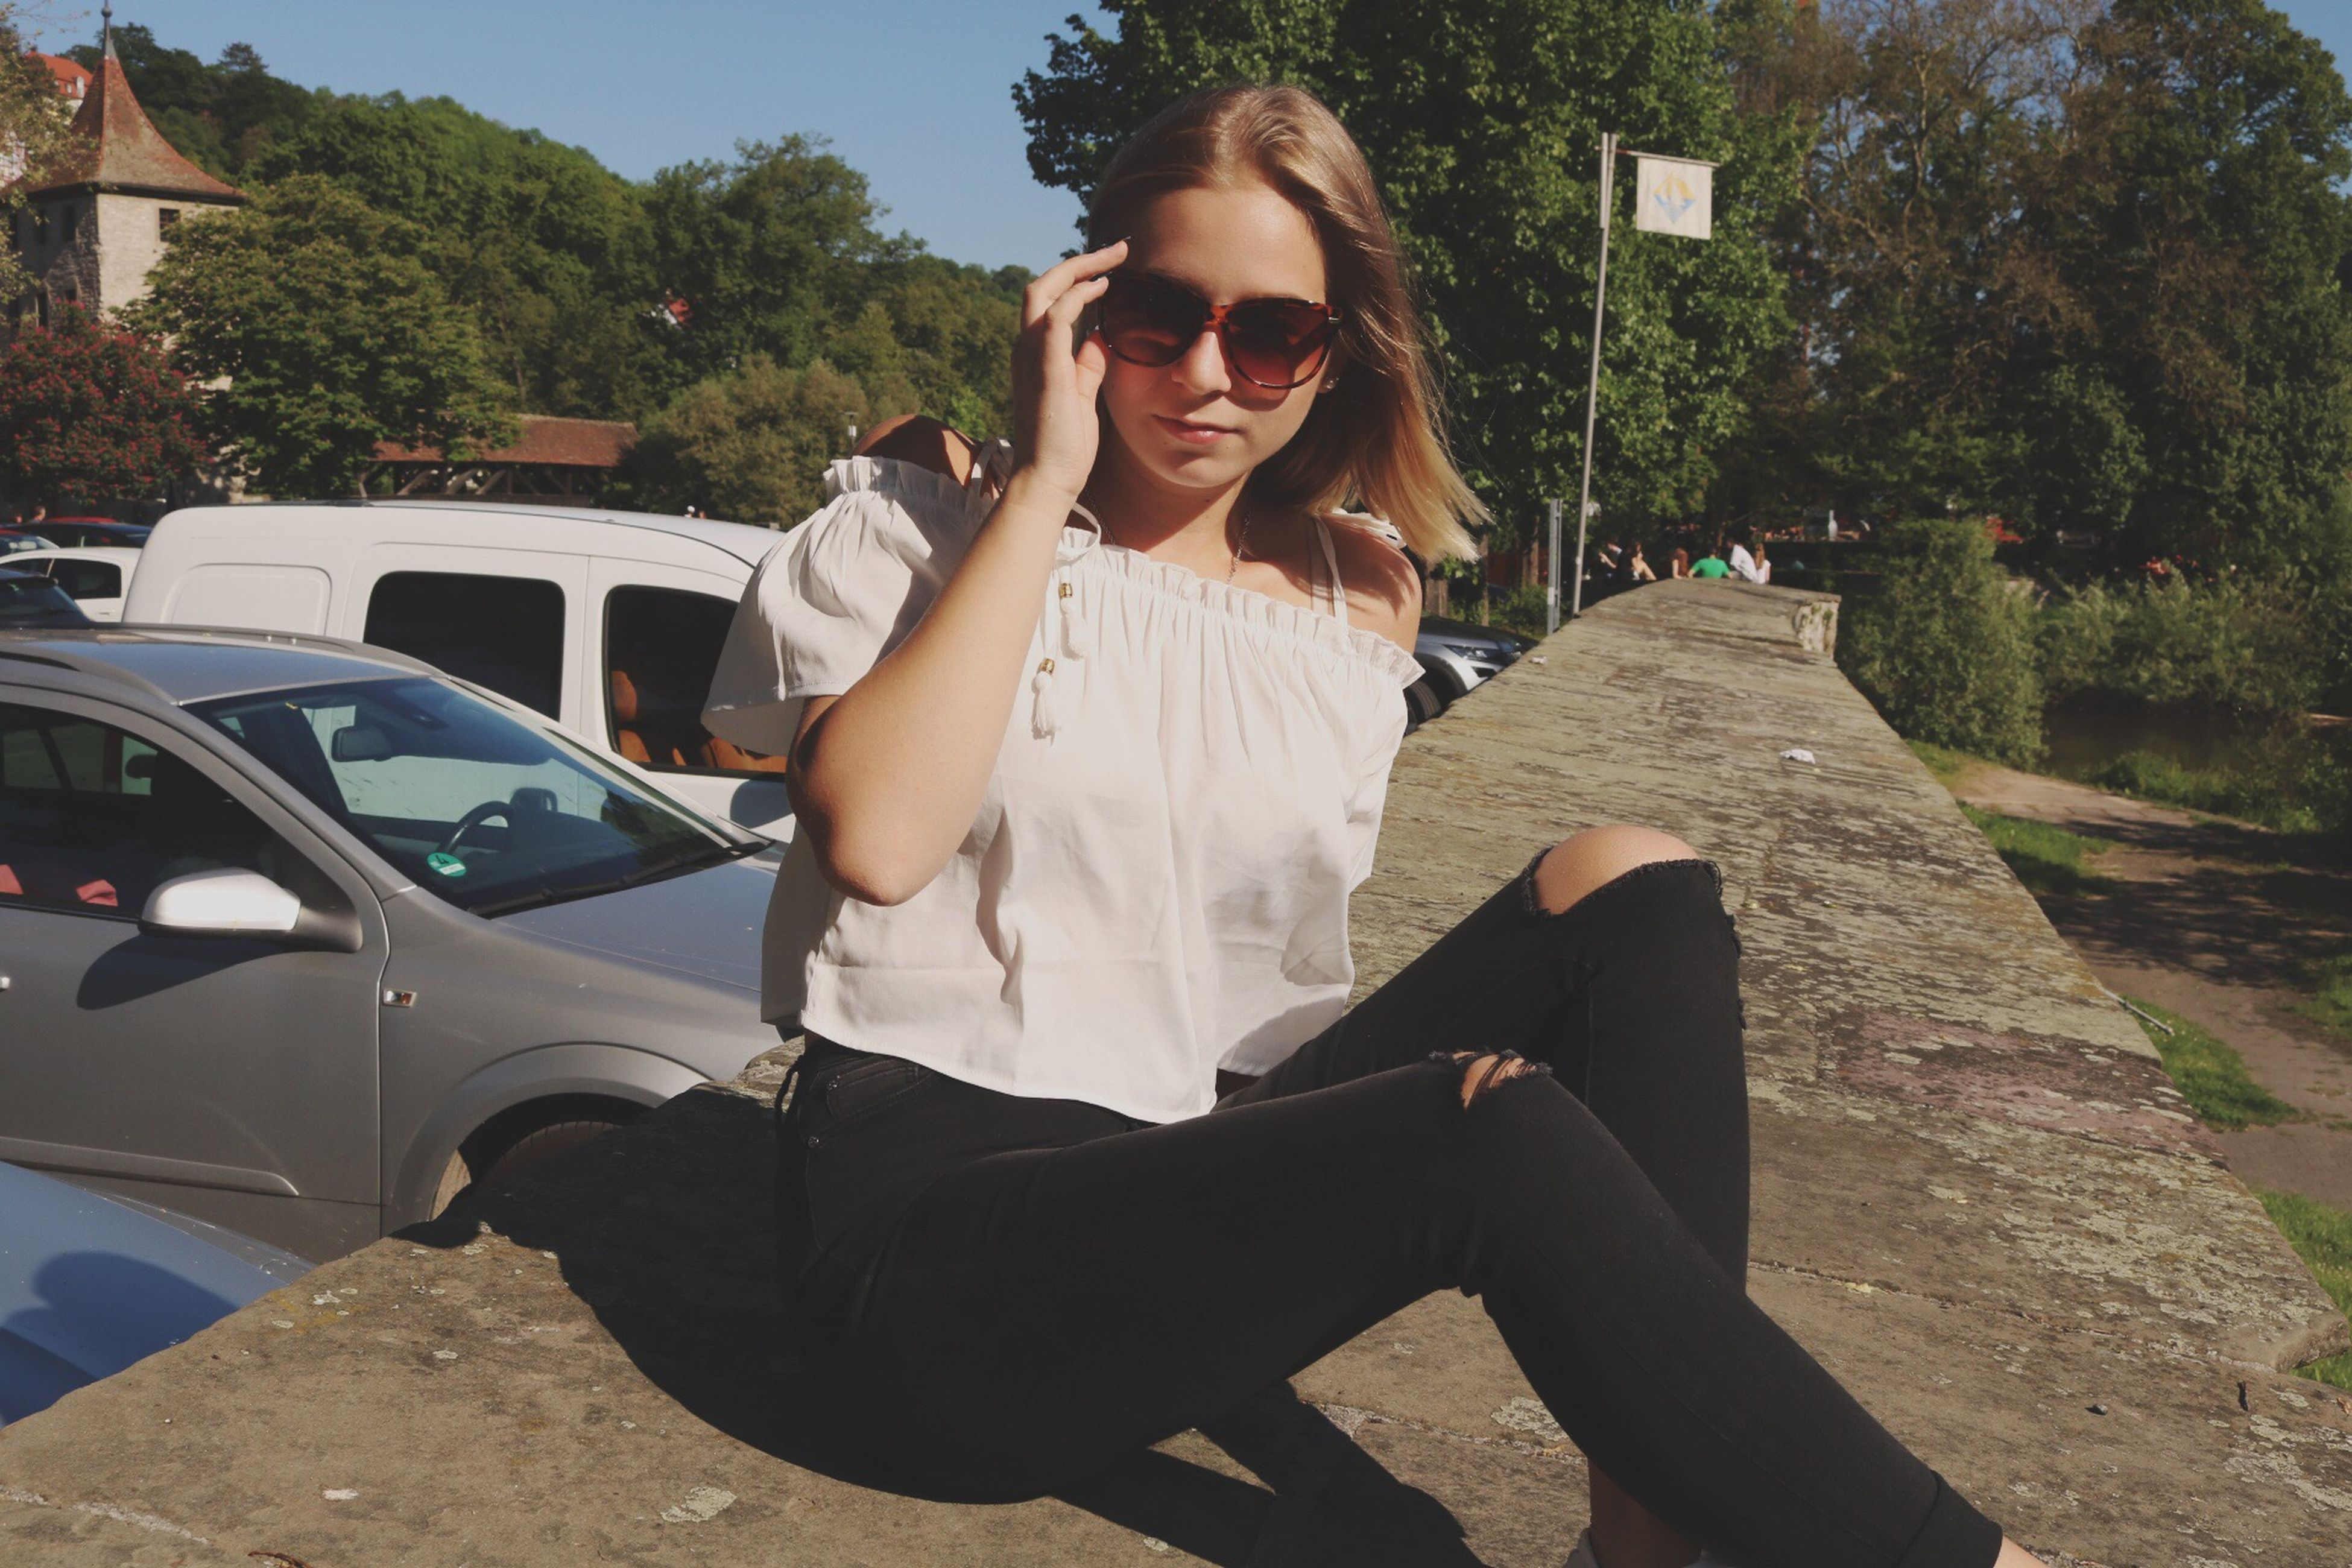 car, sunglasses, outdoors, young adult, smiling, transportation, real people, young women, tree, day, one person, people